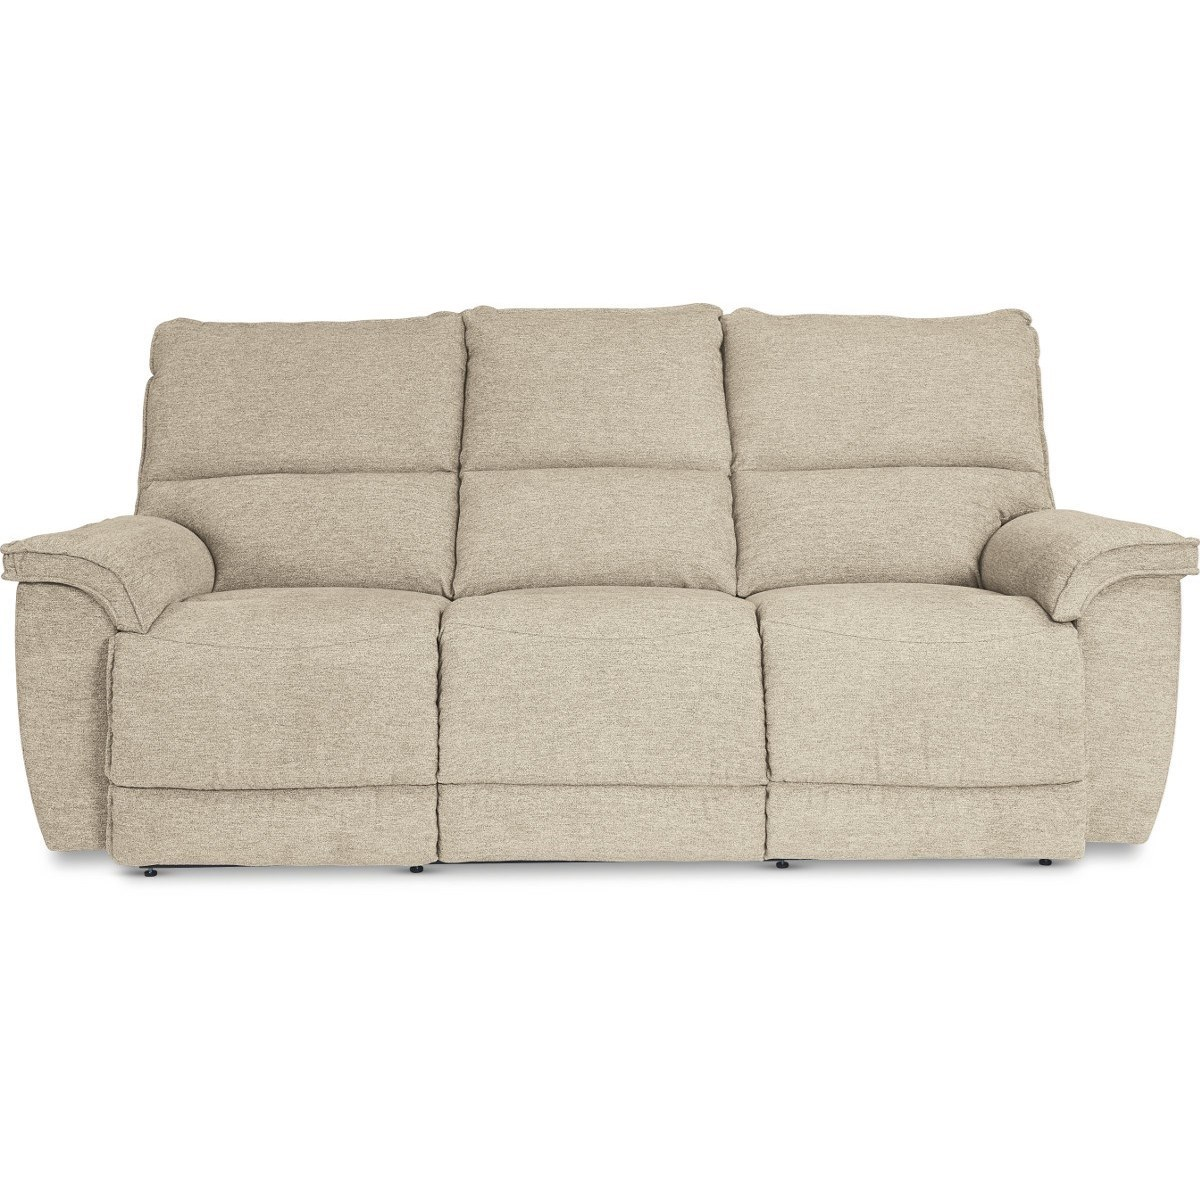 Norris Reclining Sofa by La-Z-Boy at Bennett's Furniture and Mattresses